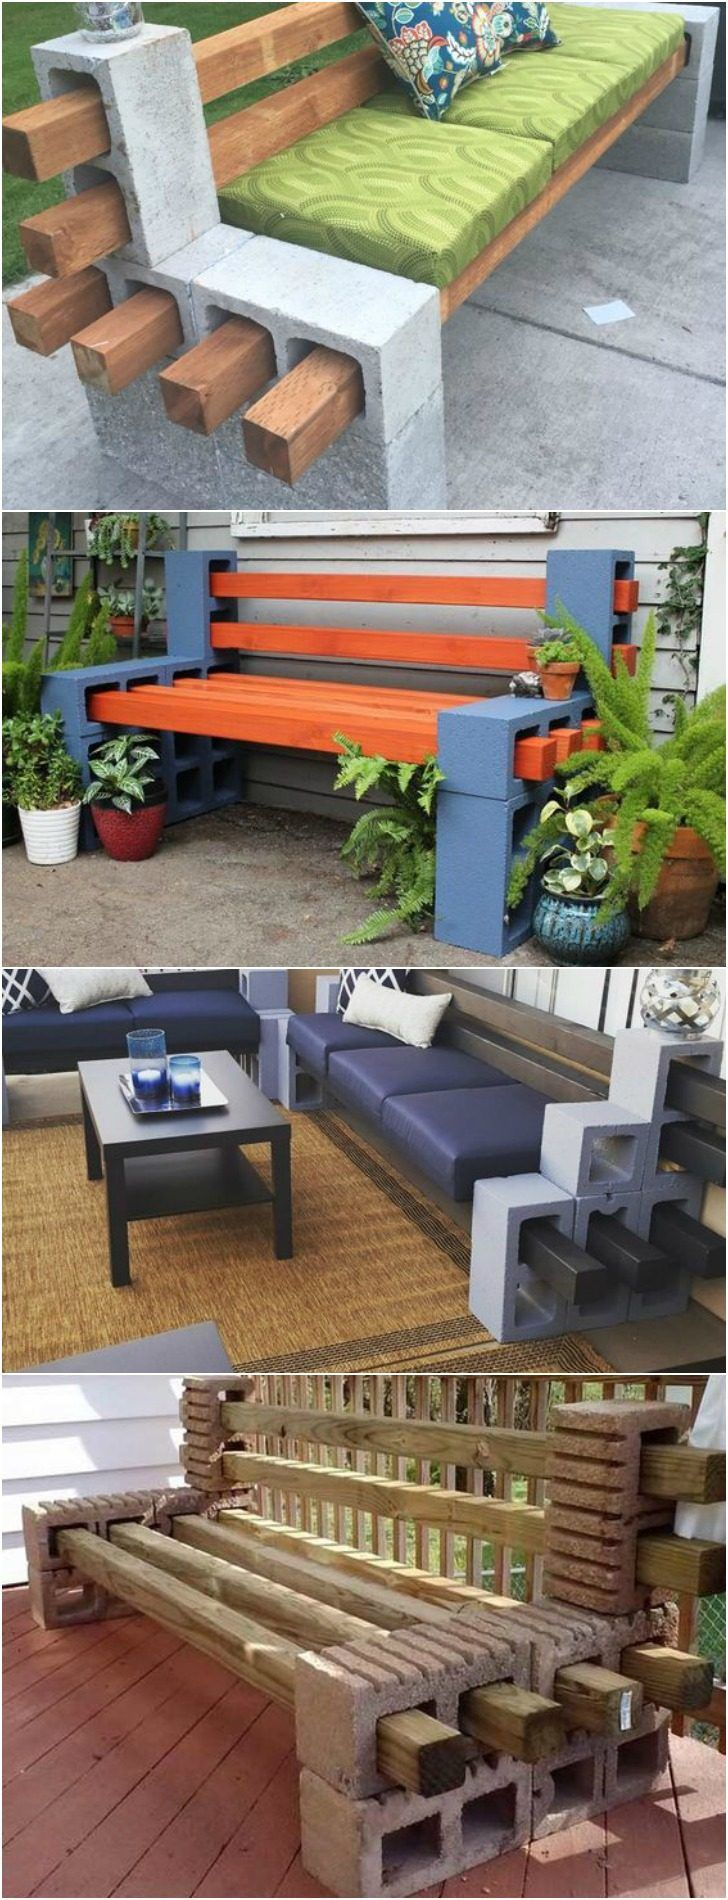 How To Make A Bench From Cinder Blocks: 10 Amazing Ideas To Inspire You!